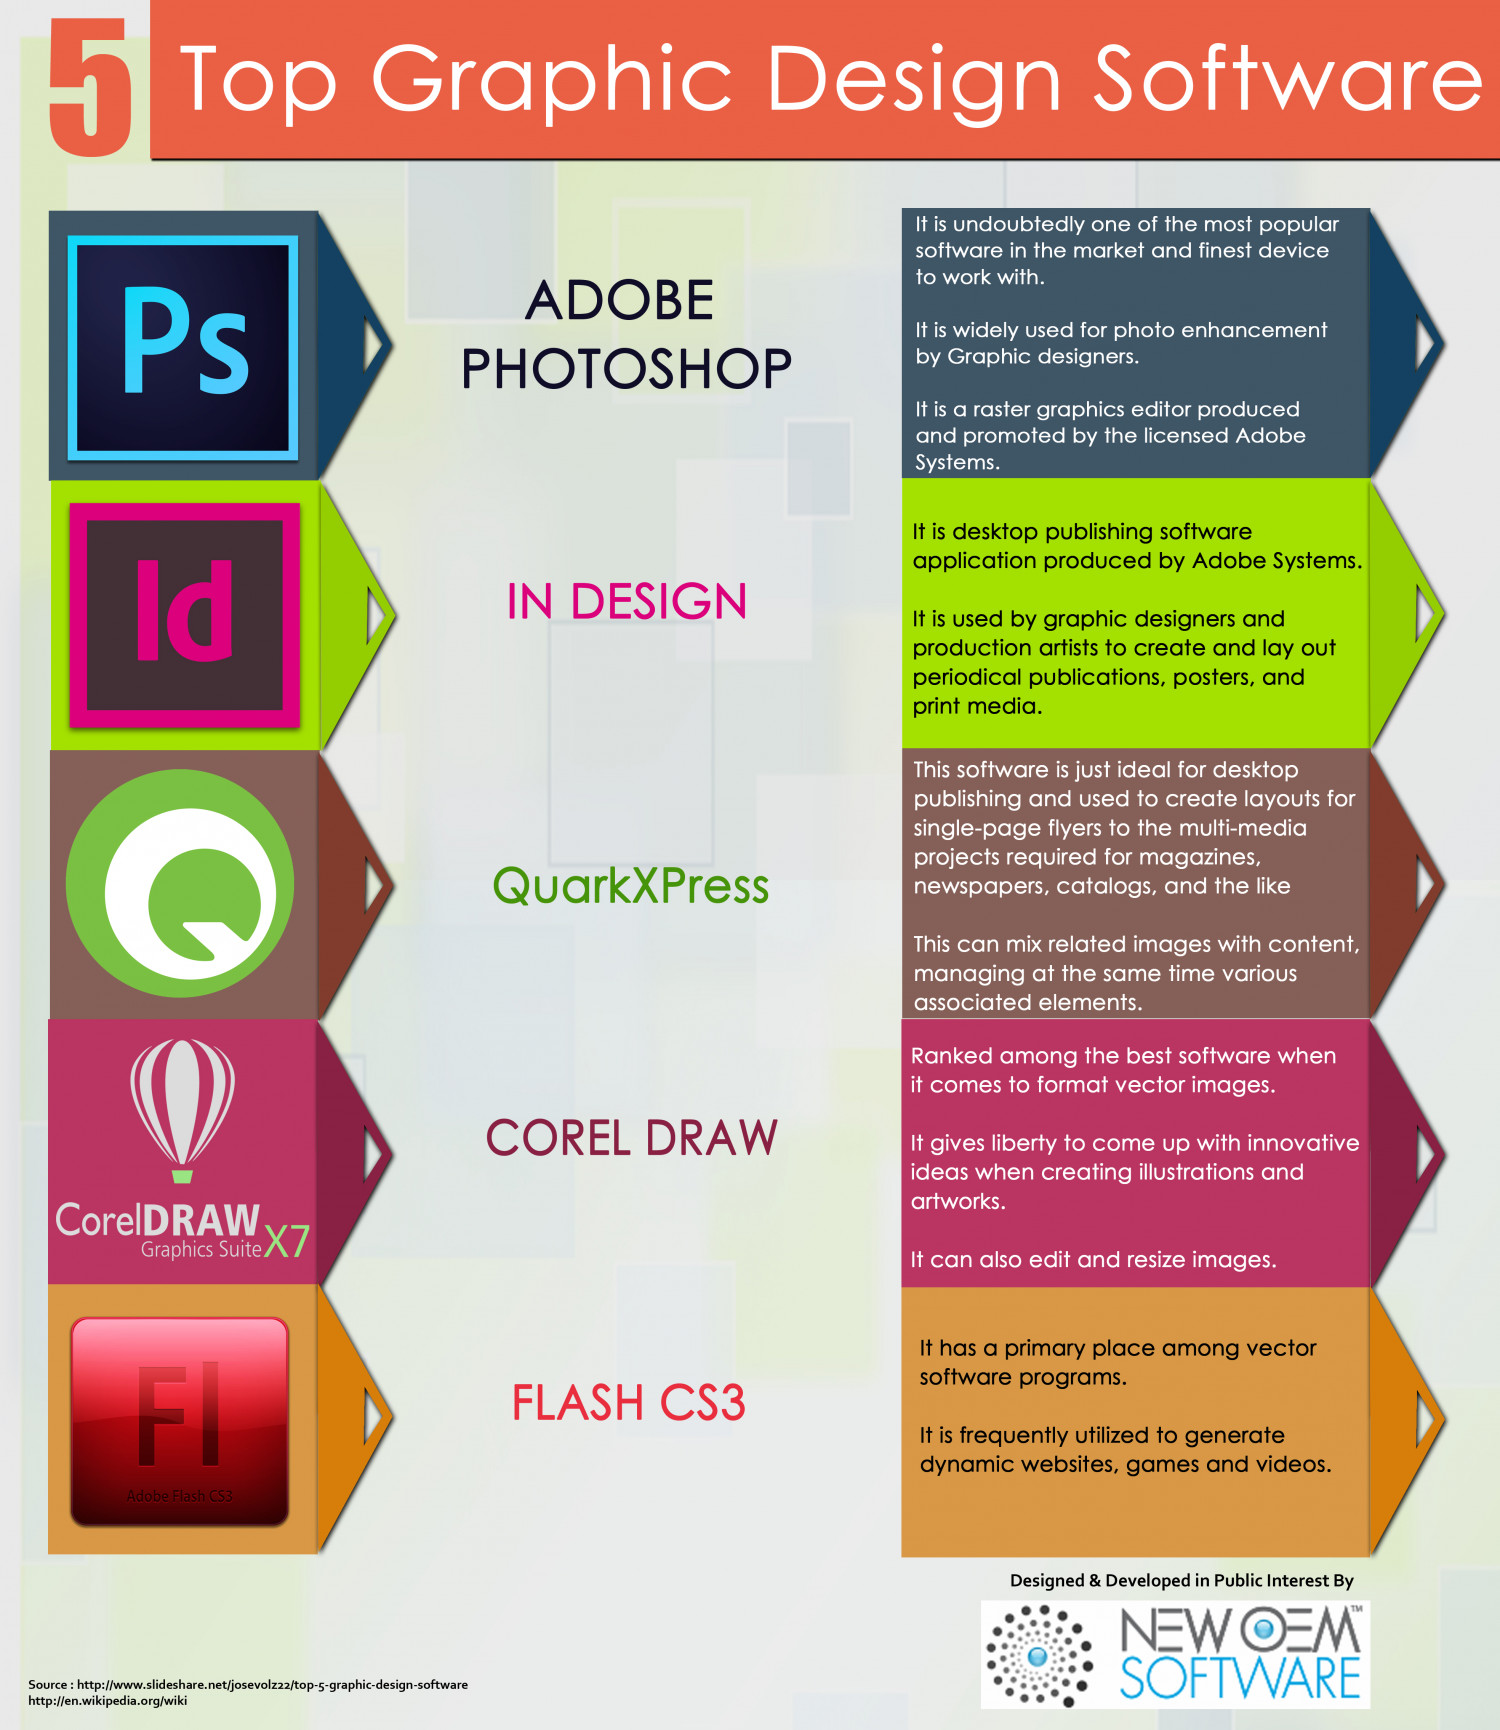 Web Design Software Best: 5 Top Graphic Design Software